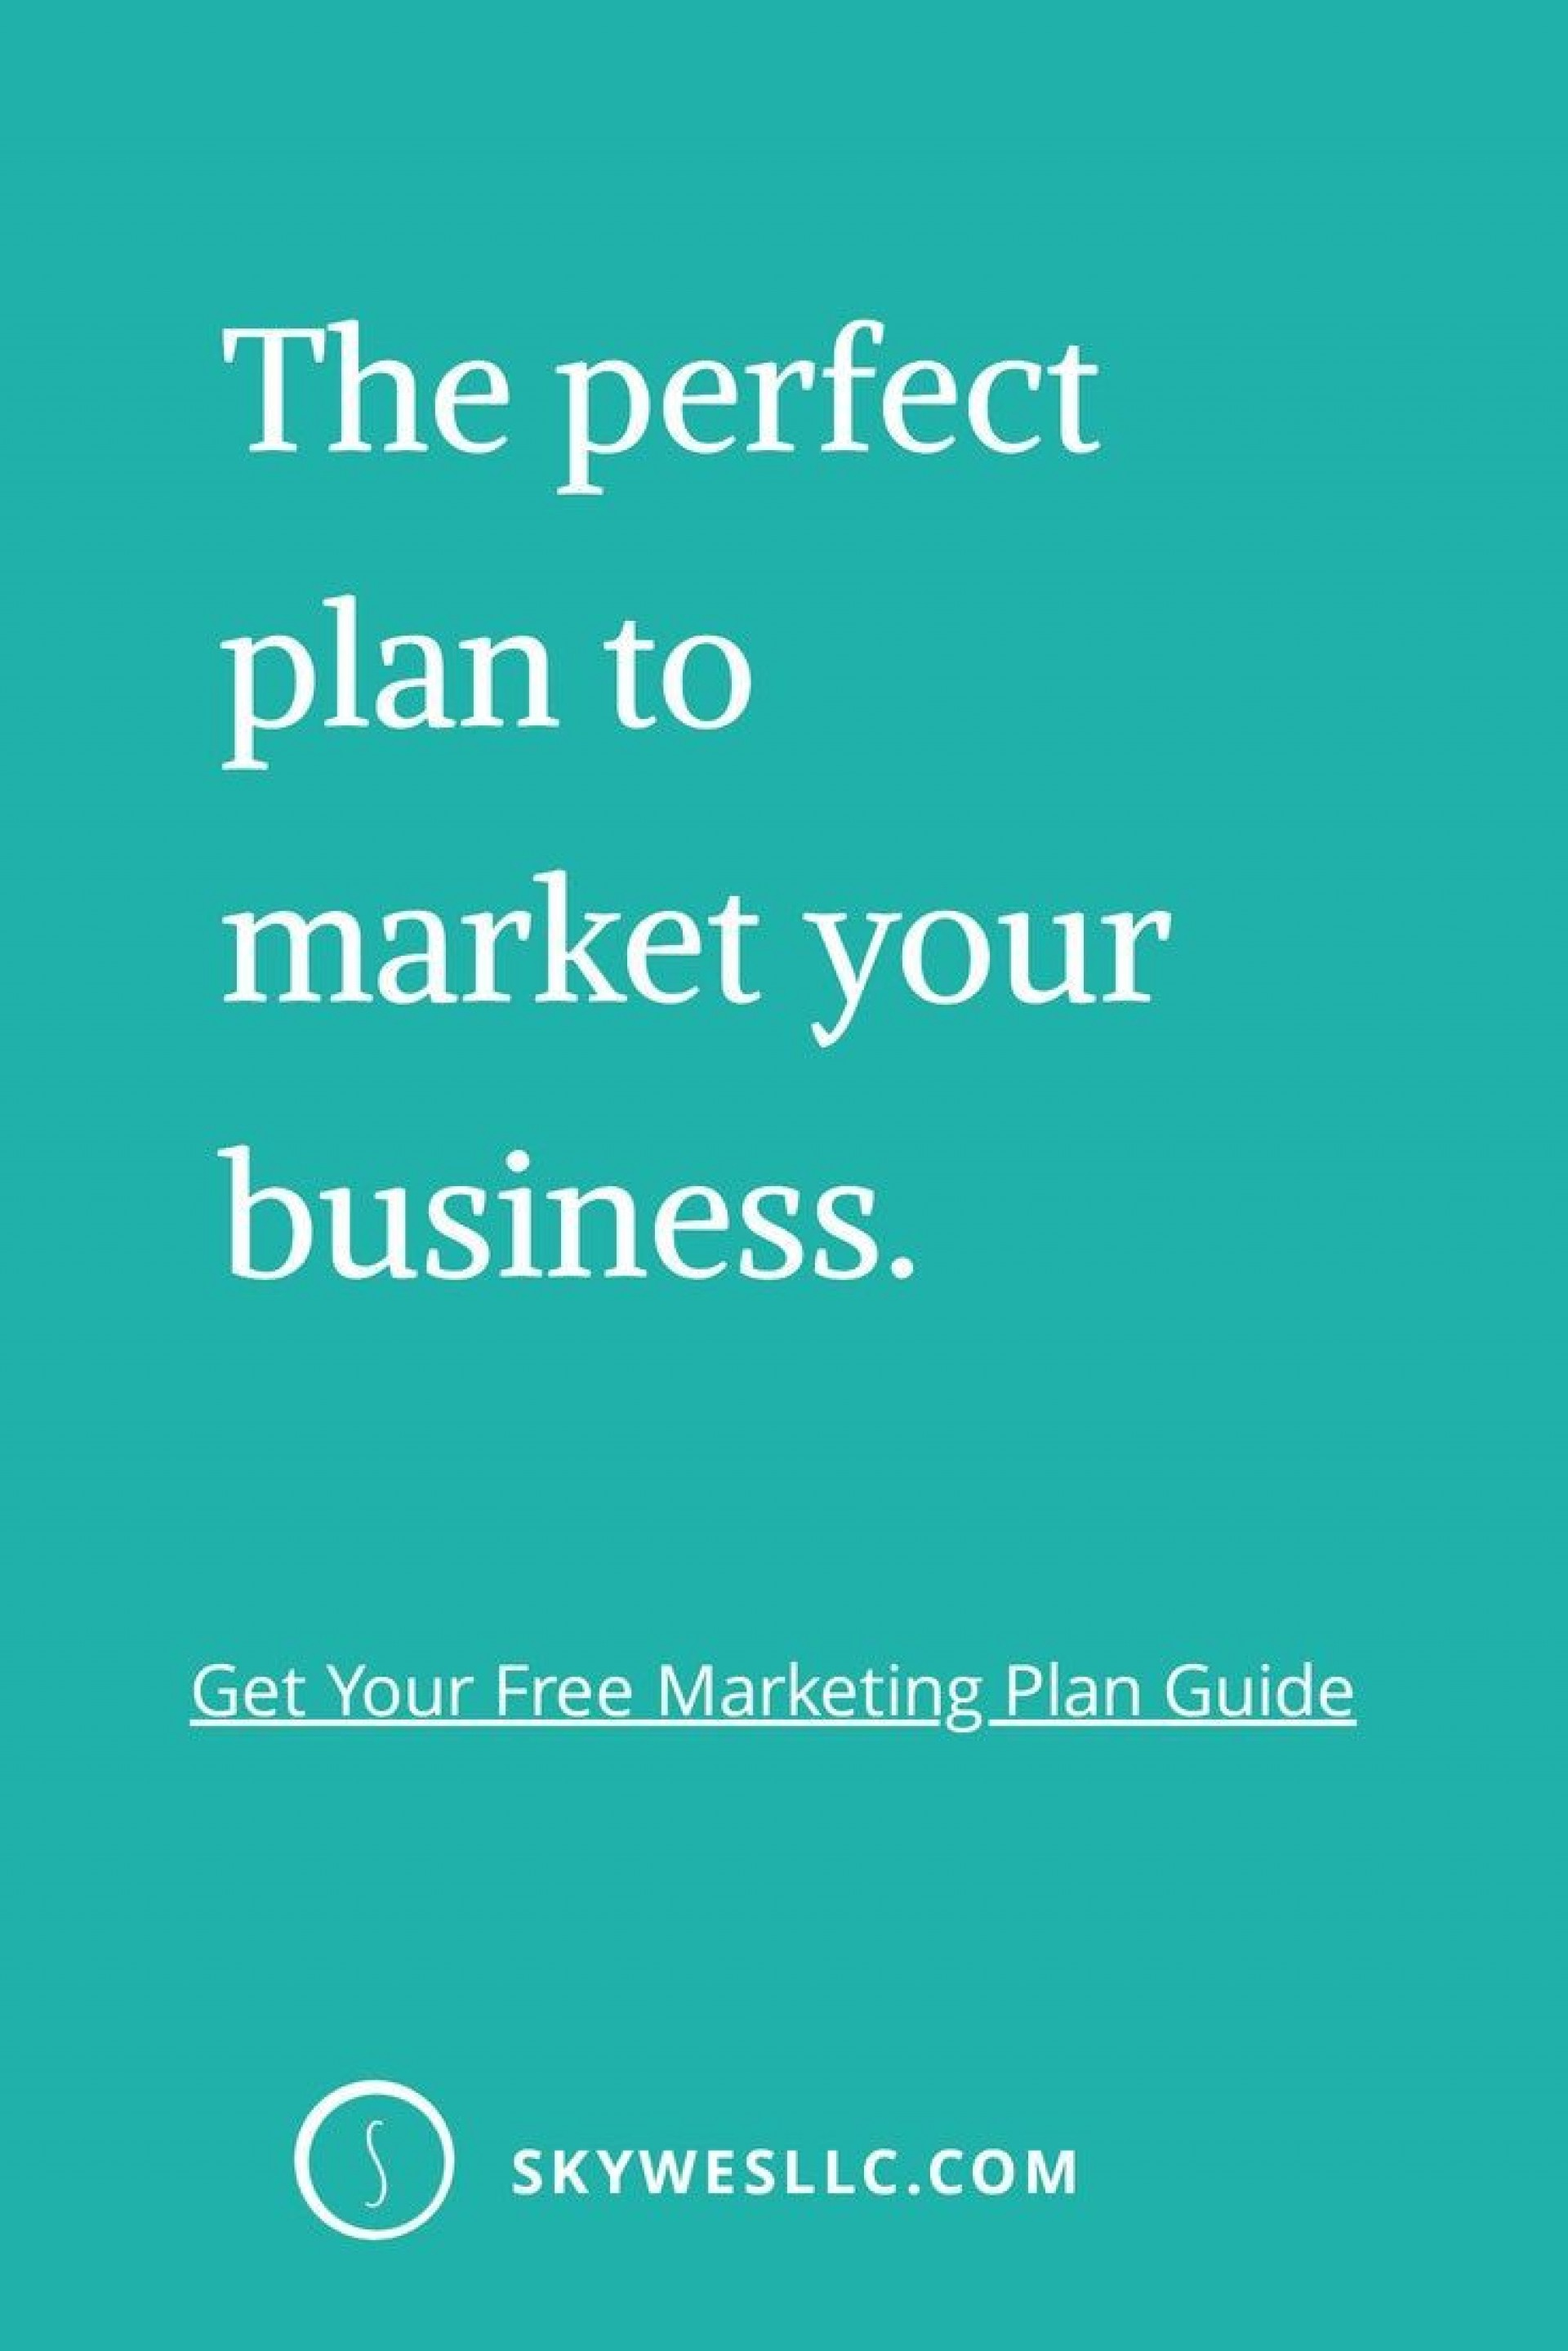 008 Fearsome Network Marketing Busines Plan Template Design  Multi Level1920